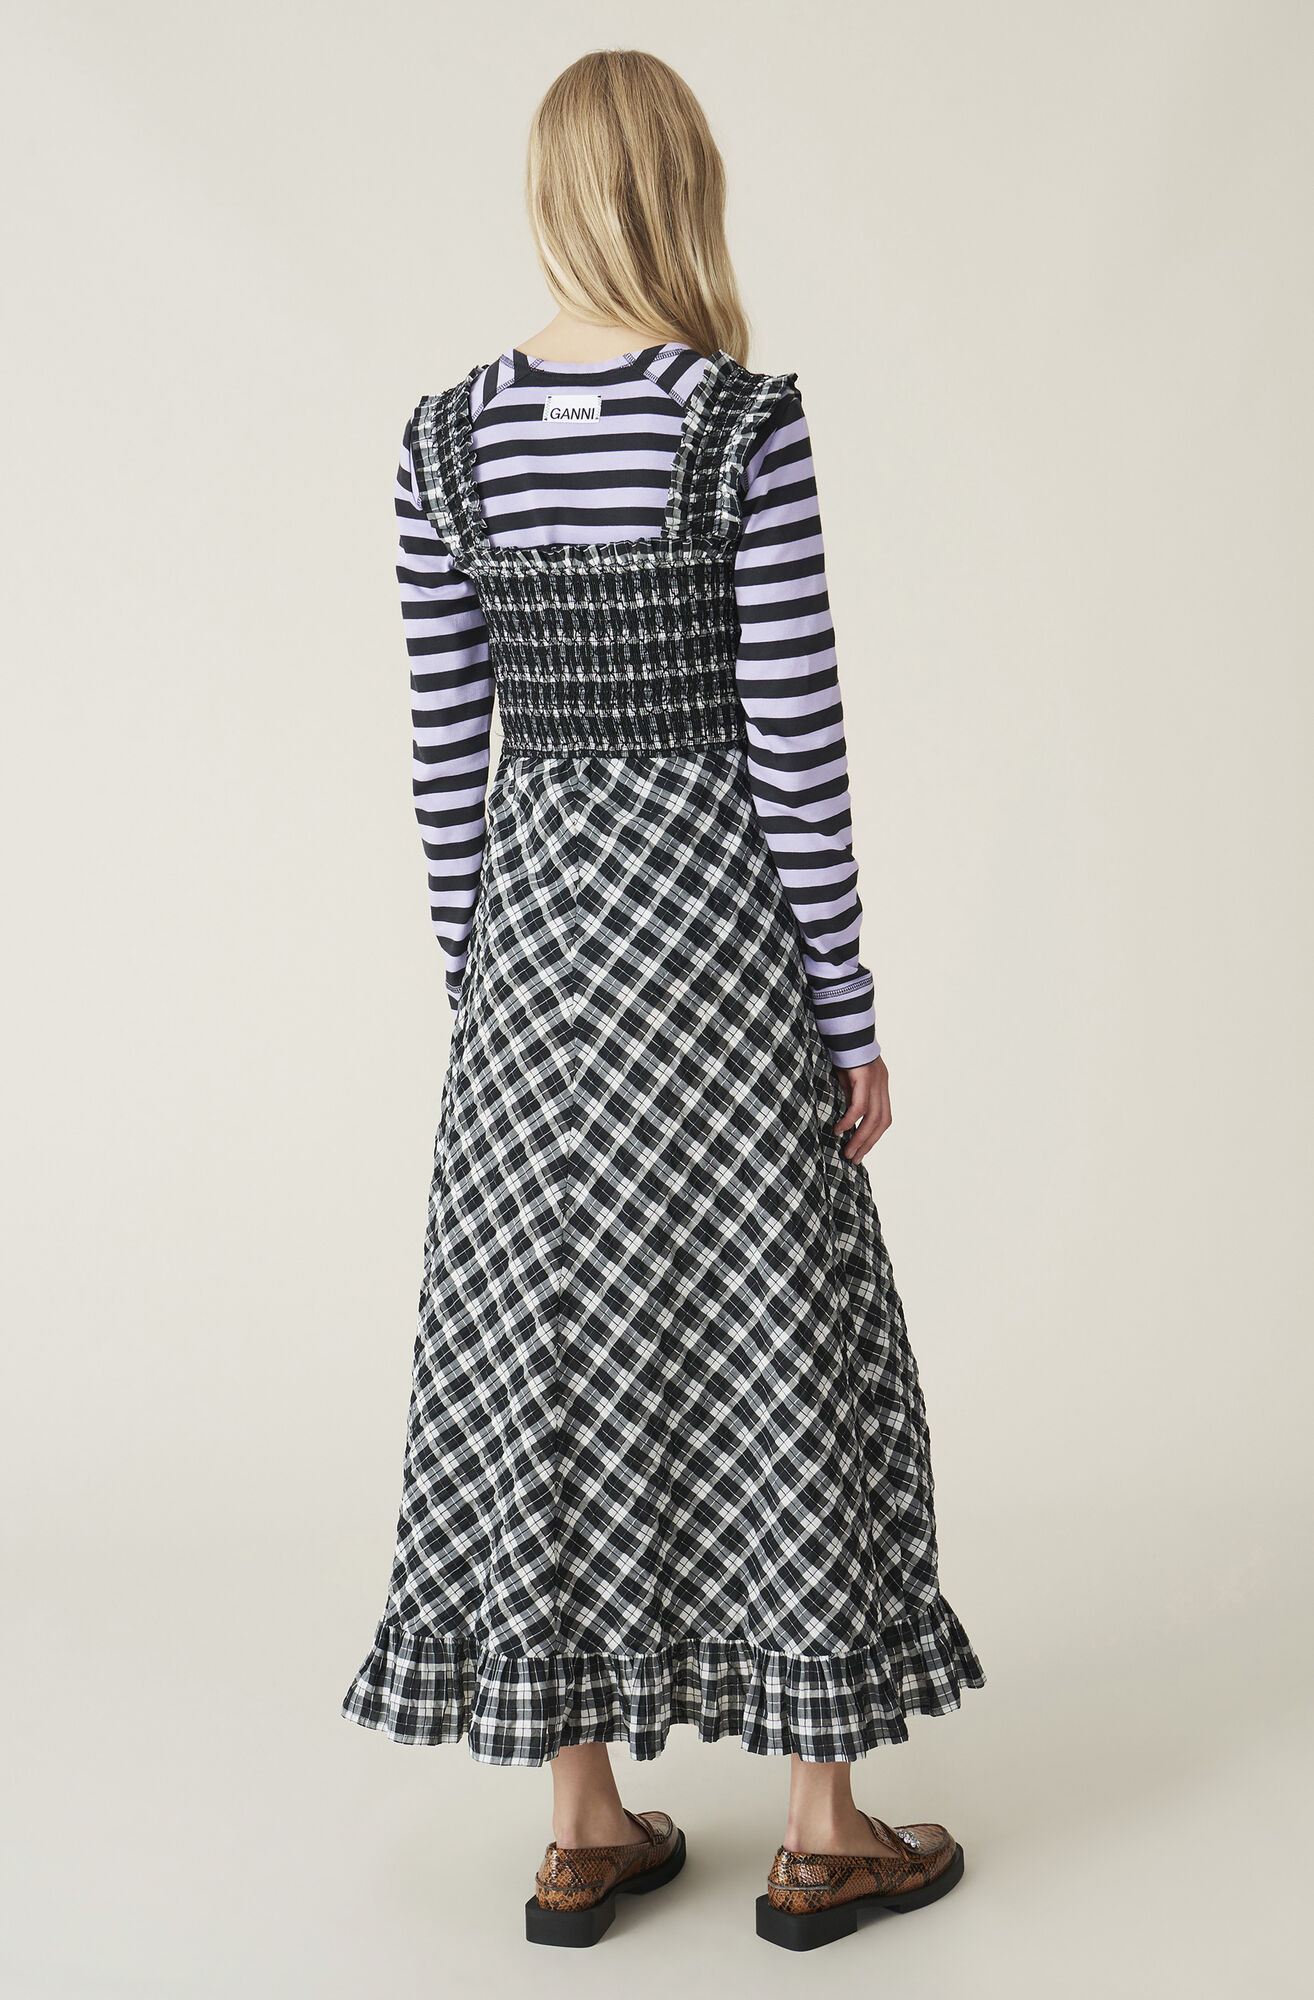 Ganni Seersucker Check Maxi Dress 1019 00 Dkk Shop Your New